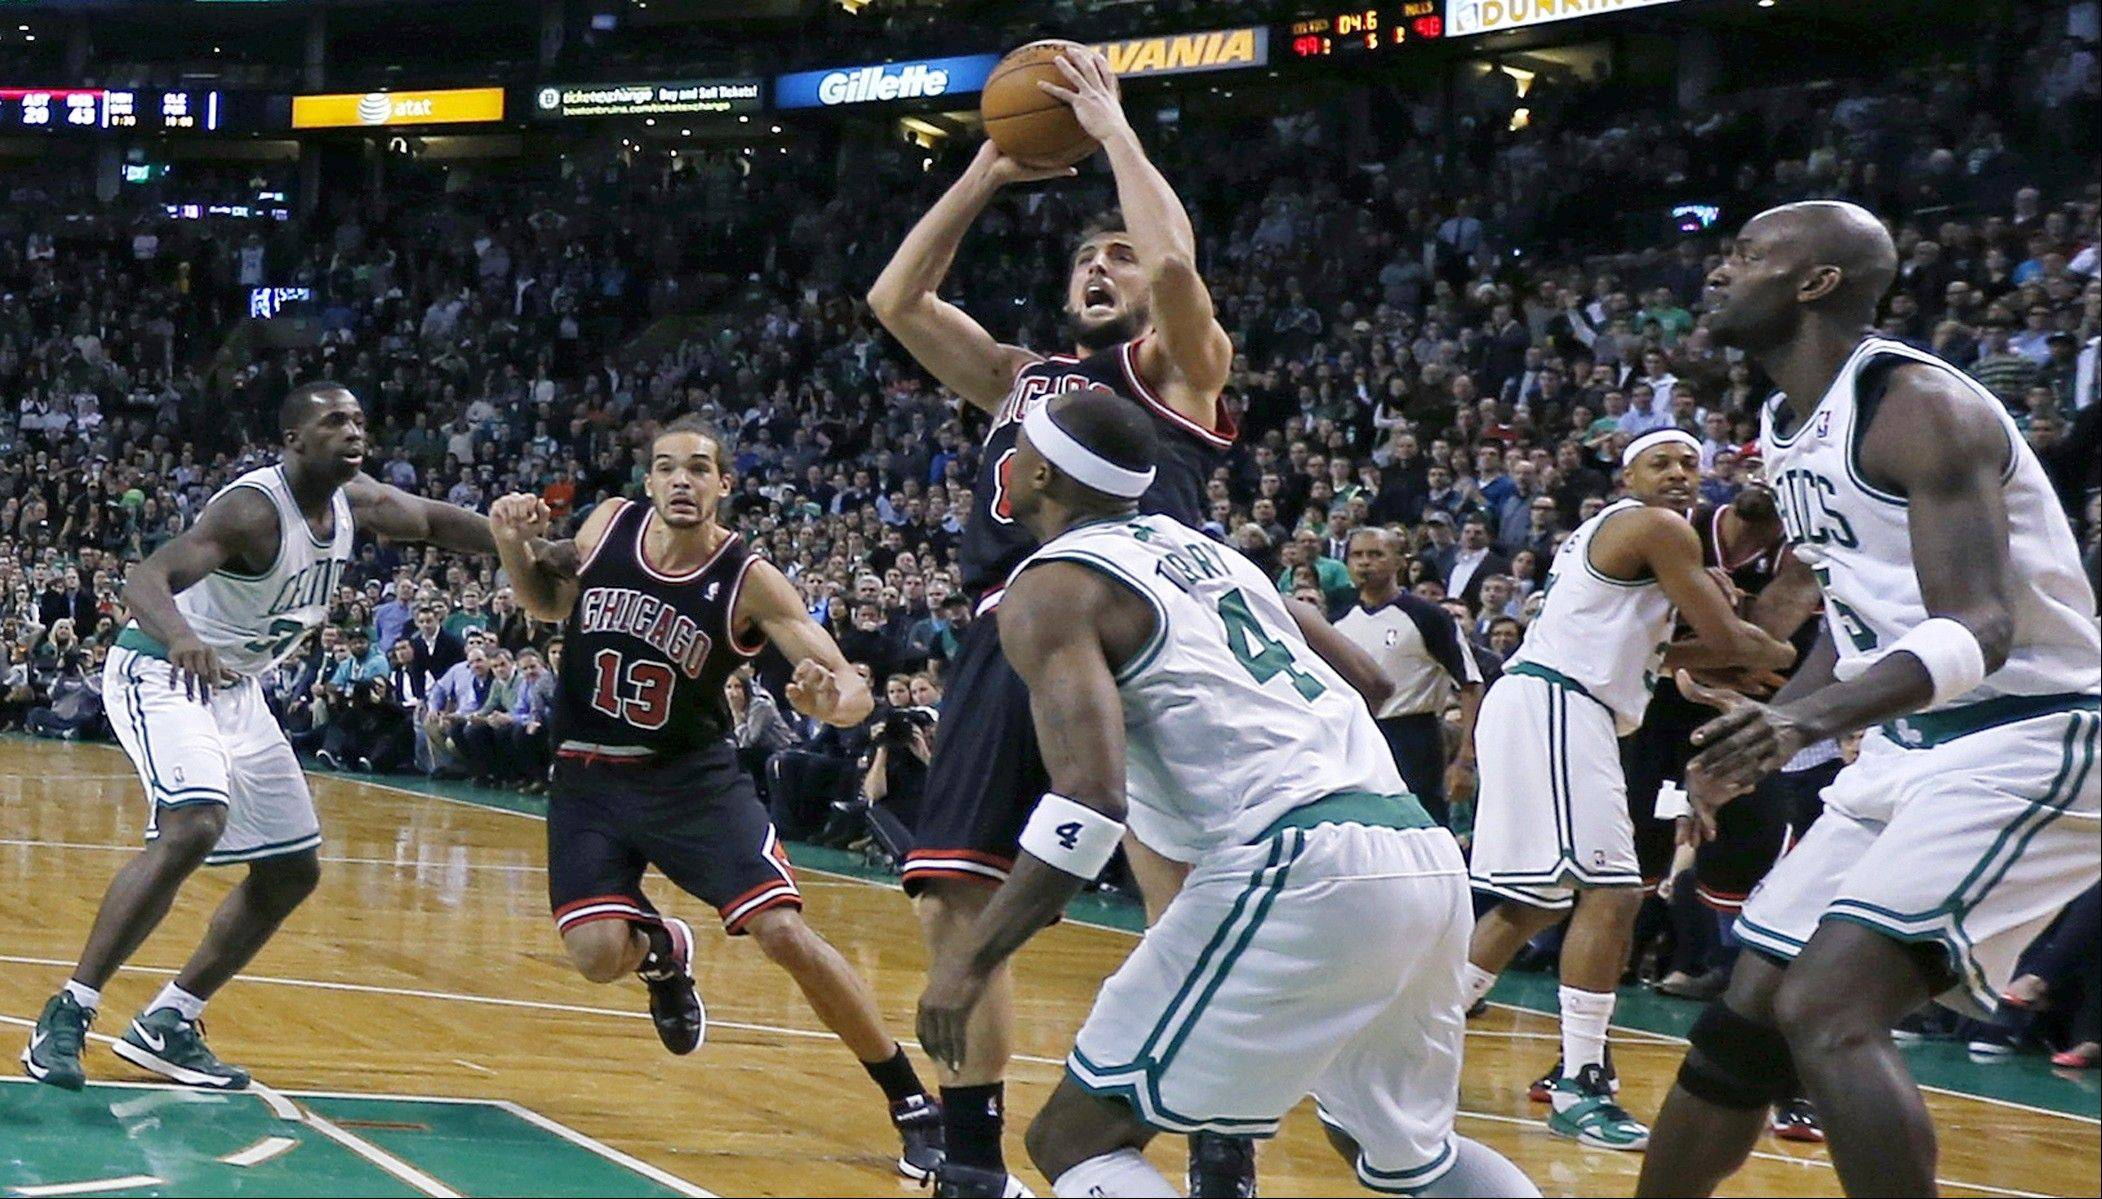 Bulls guard Marco Belinelli, center, puts up the game-winning basket in the final seconds of overtime against the Celtics on Friday in Boston.